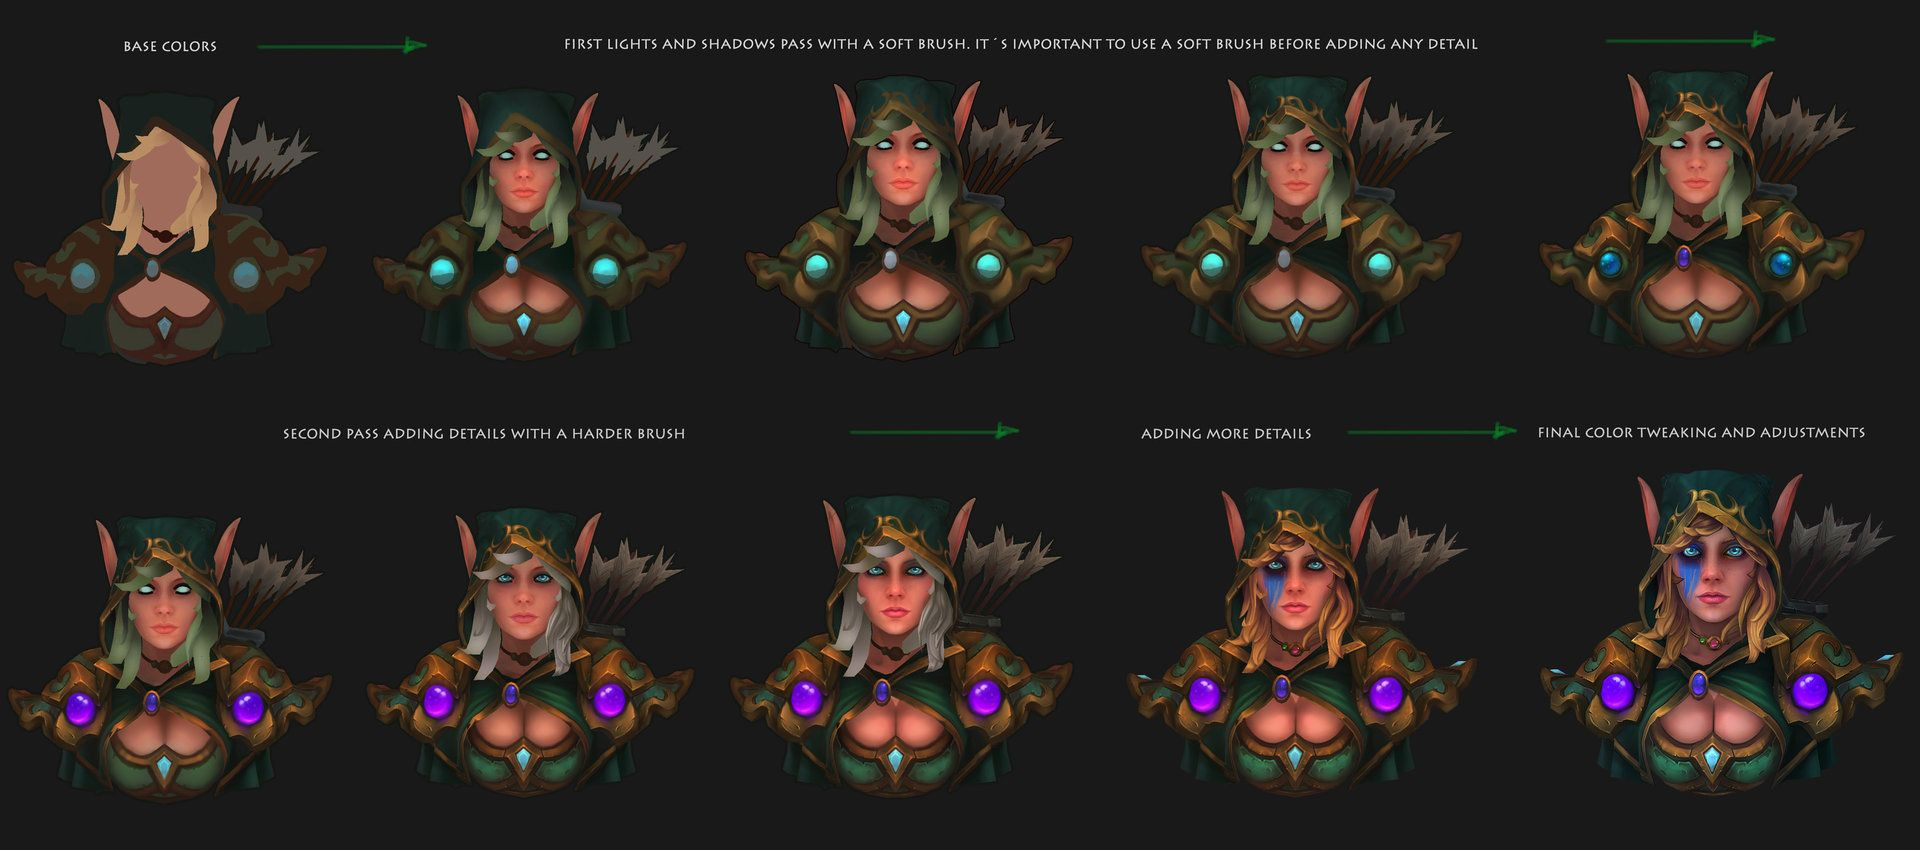 ArtStation - World of Warcraft Fan Art - Alleria Windrunner, Daniel Orive